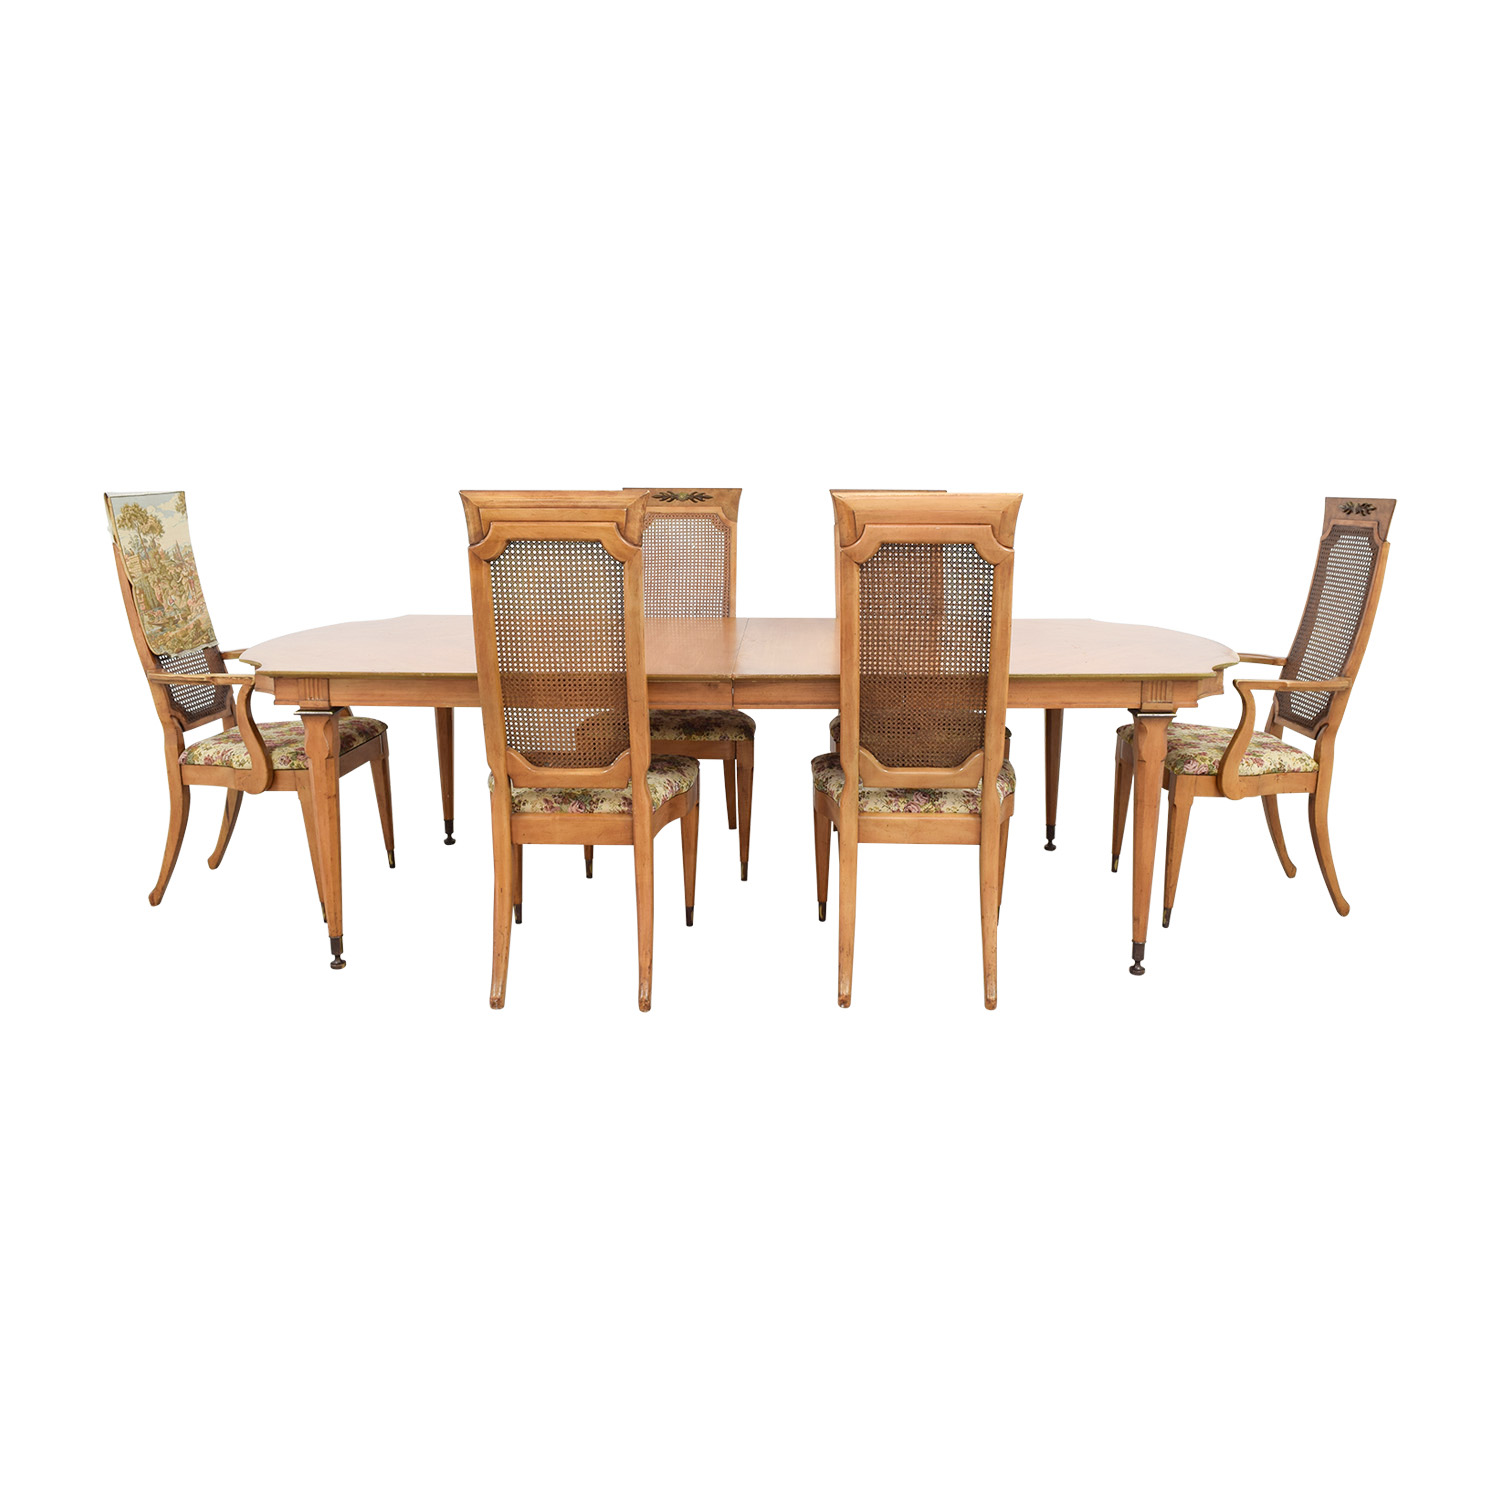 Merz 1968 Wood Dining Set with Floral Upholstered Chairs Merz 1968